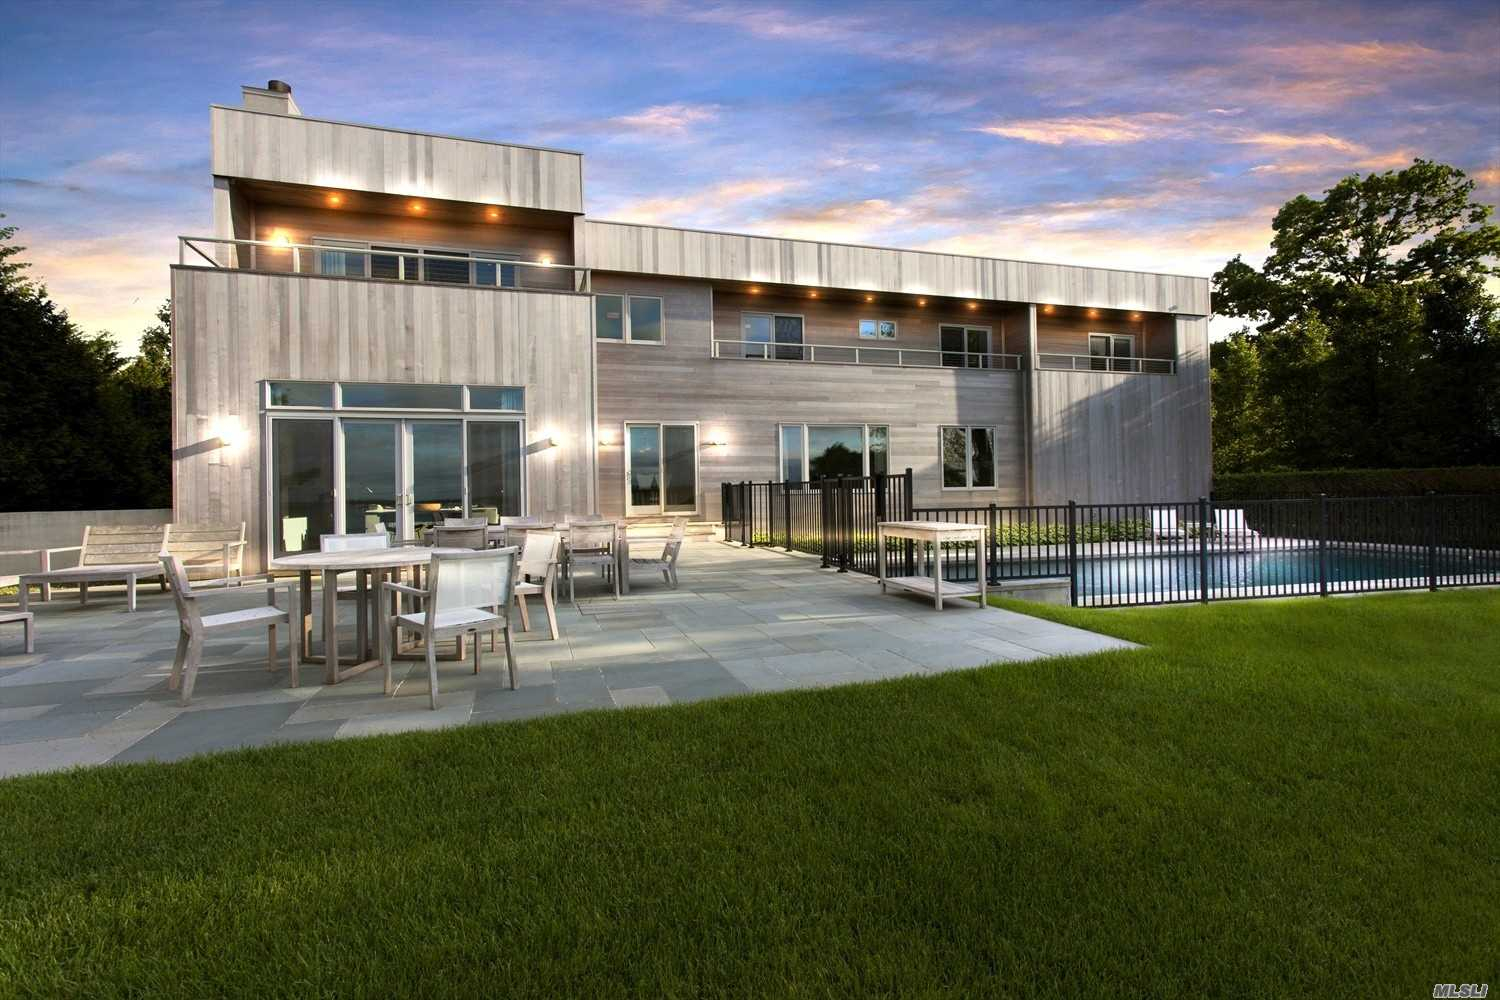 Channeling Vacation Vibes, This Flawless Home, Has 130Ft Of Beach Front, With A 4X70 Dock On Southold Bay, And A Water Side Gunite Pool. All 5 Bedrooms Are En Suite And Have Their Own Teak Balcony's, Featuring Views Of The Bay. There Are 5.5 Bathrooms In Total. A True Eat-In Chief's Kitchen, Soring Ceilings In The Living Room, Upstairs Office/Den, And Full Finished Basement With A Living Room And Bathroom. You Couldn't Ask For Anything More.